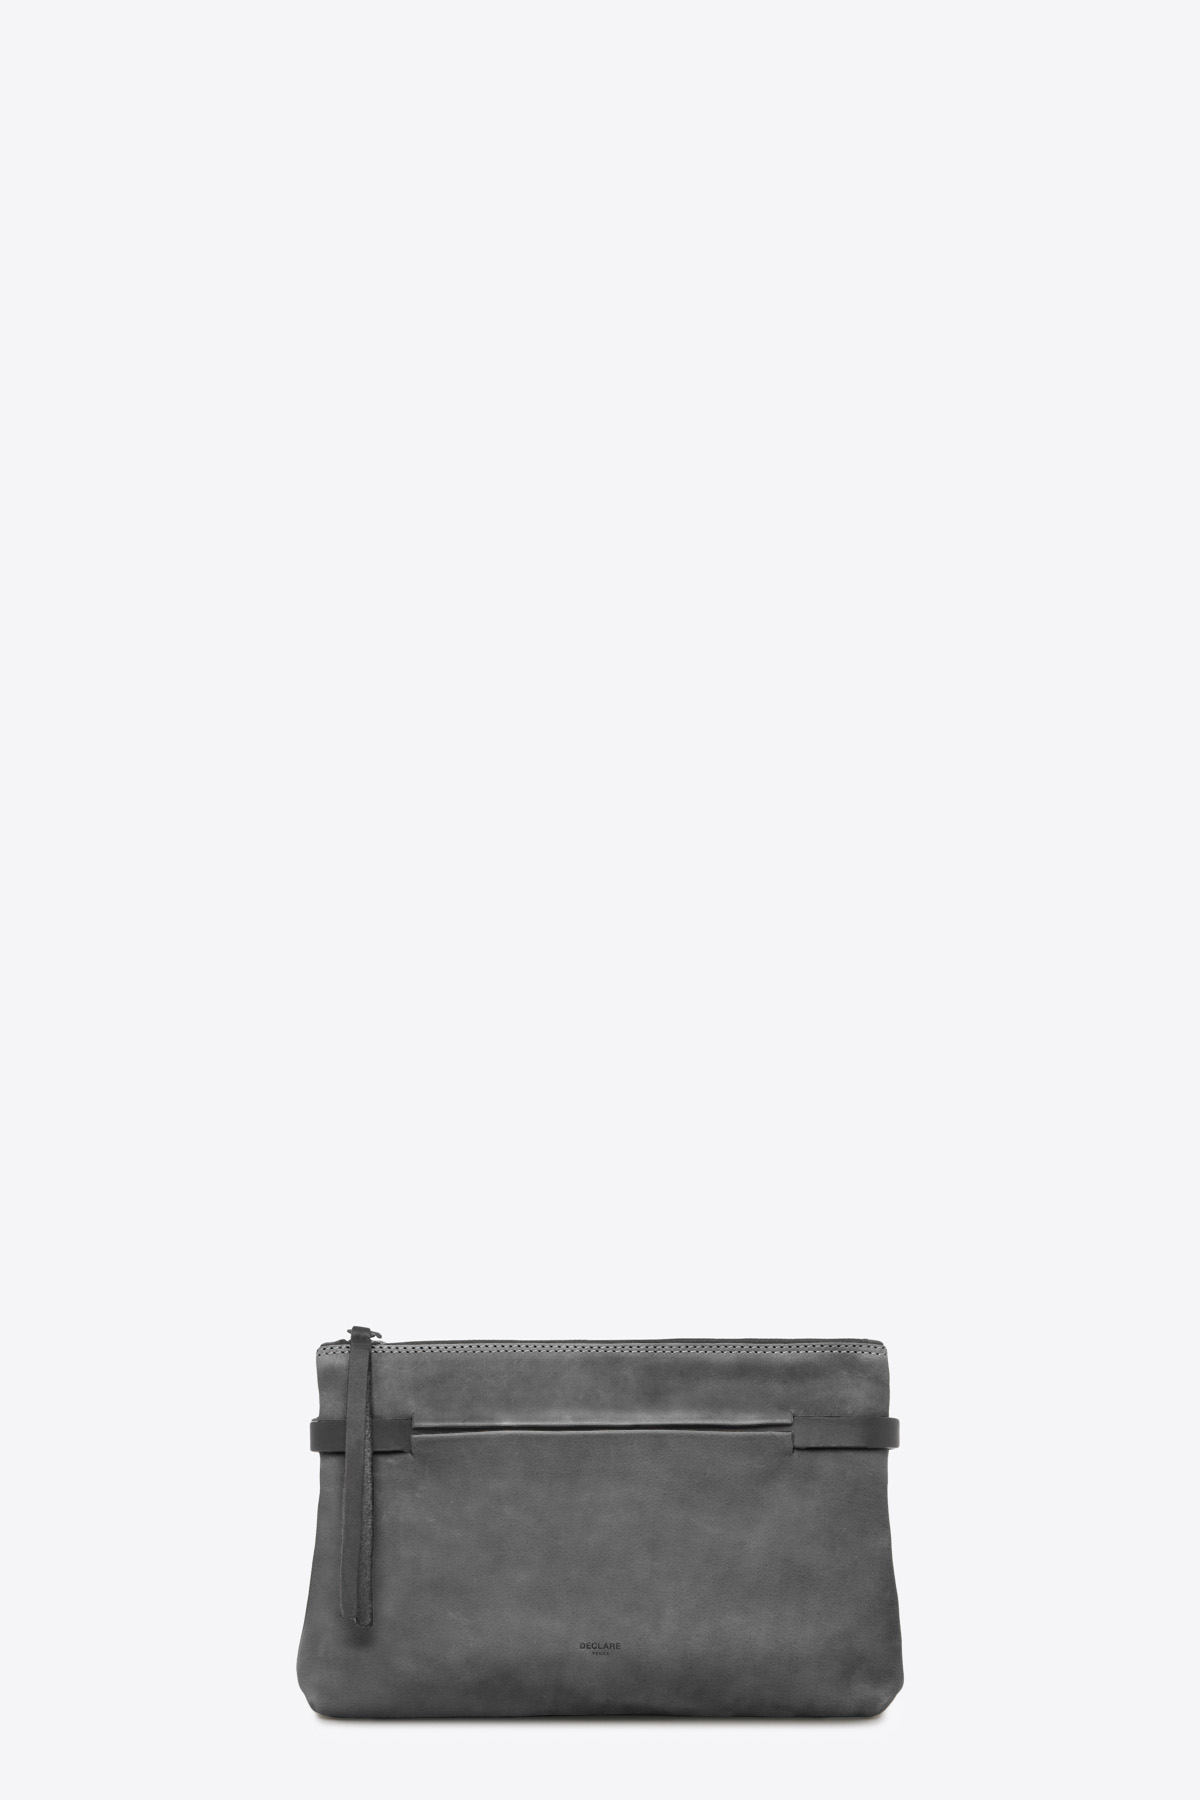 dclr004s-tapeclutch-a2-shadowgray-front